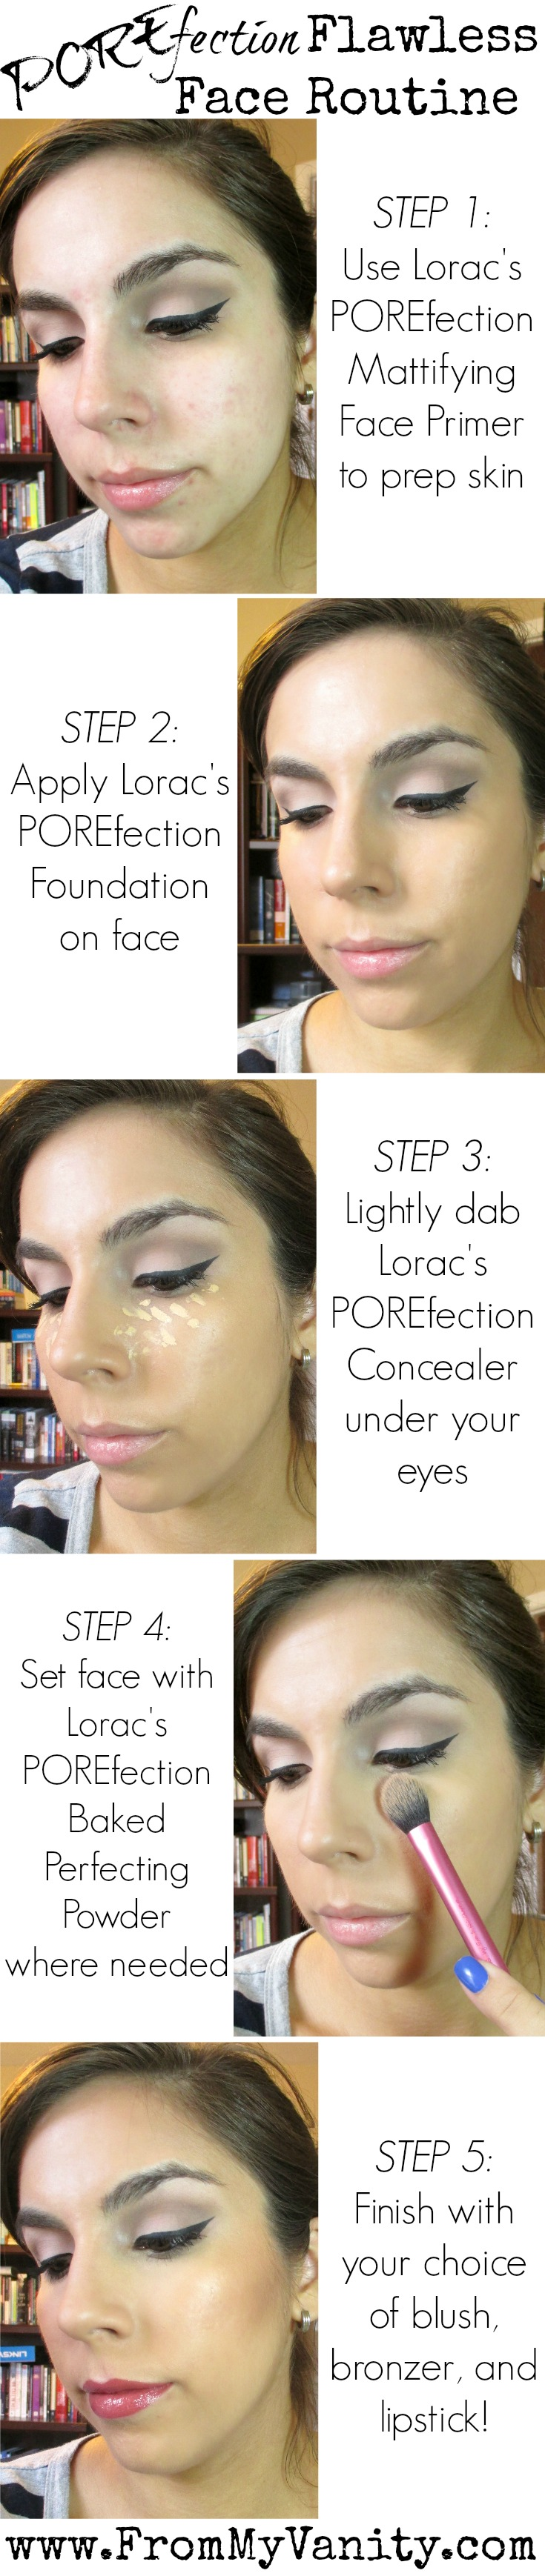 Flawless Face Routine // LORAC POREfection Tutorial // Step-by-Step Tutorial // FromMyVanity.com